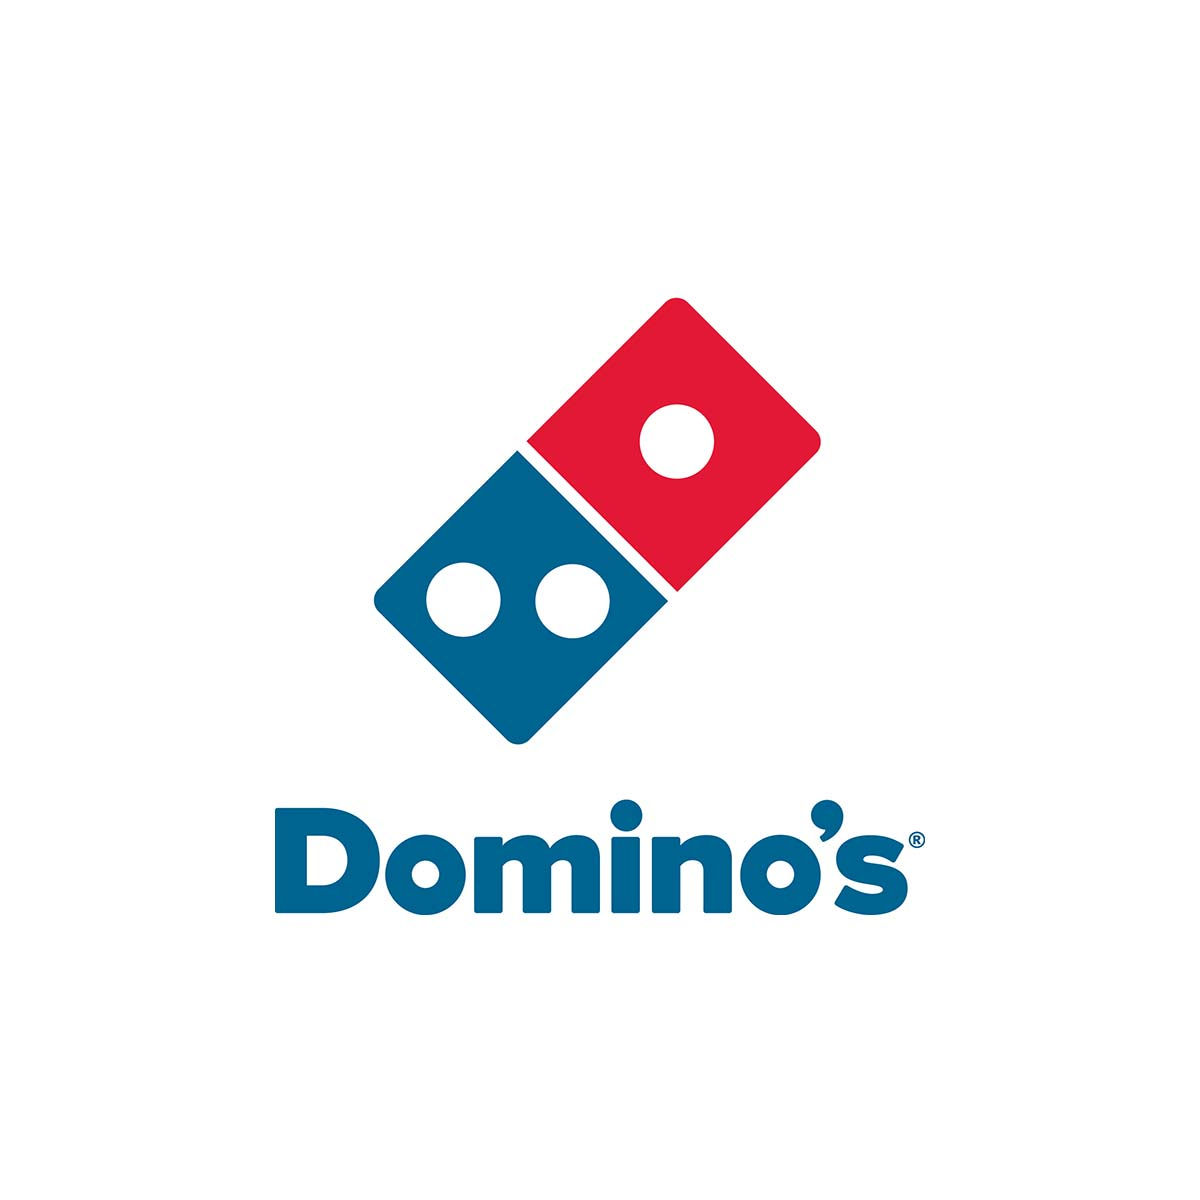 Domino s home page domino s pizza order pizza online for delivery dominos com